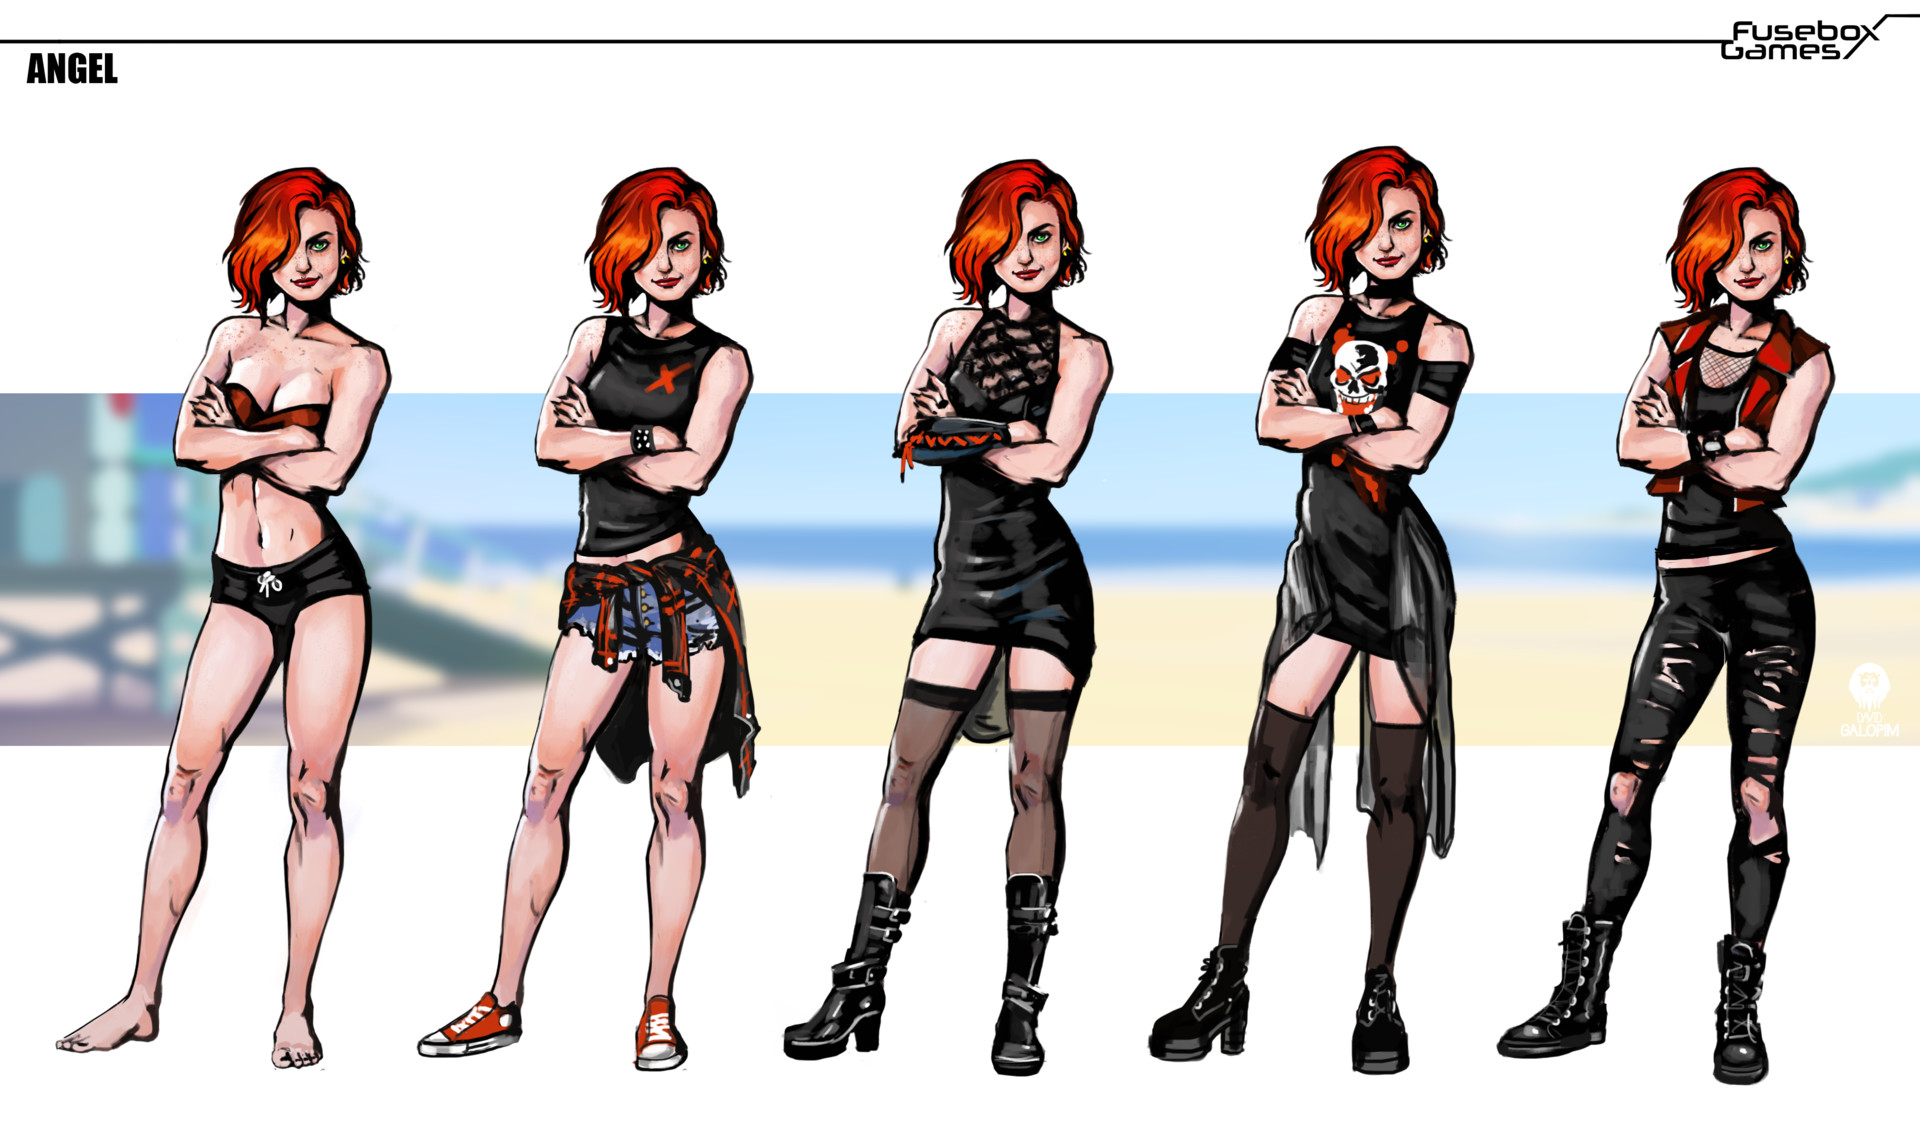 medium resolution of artstation baywatch the game characters david galopim the game fuse box